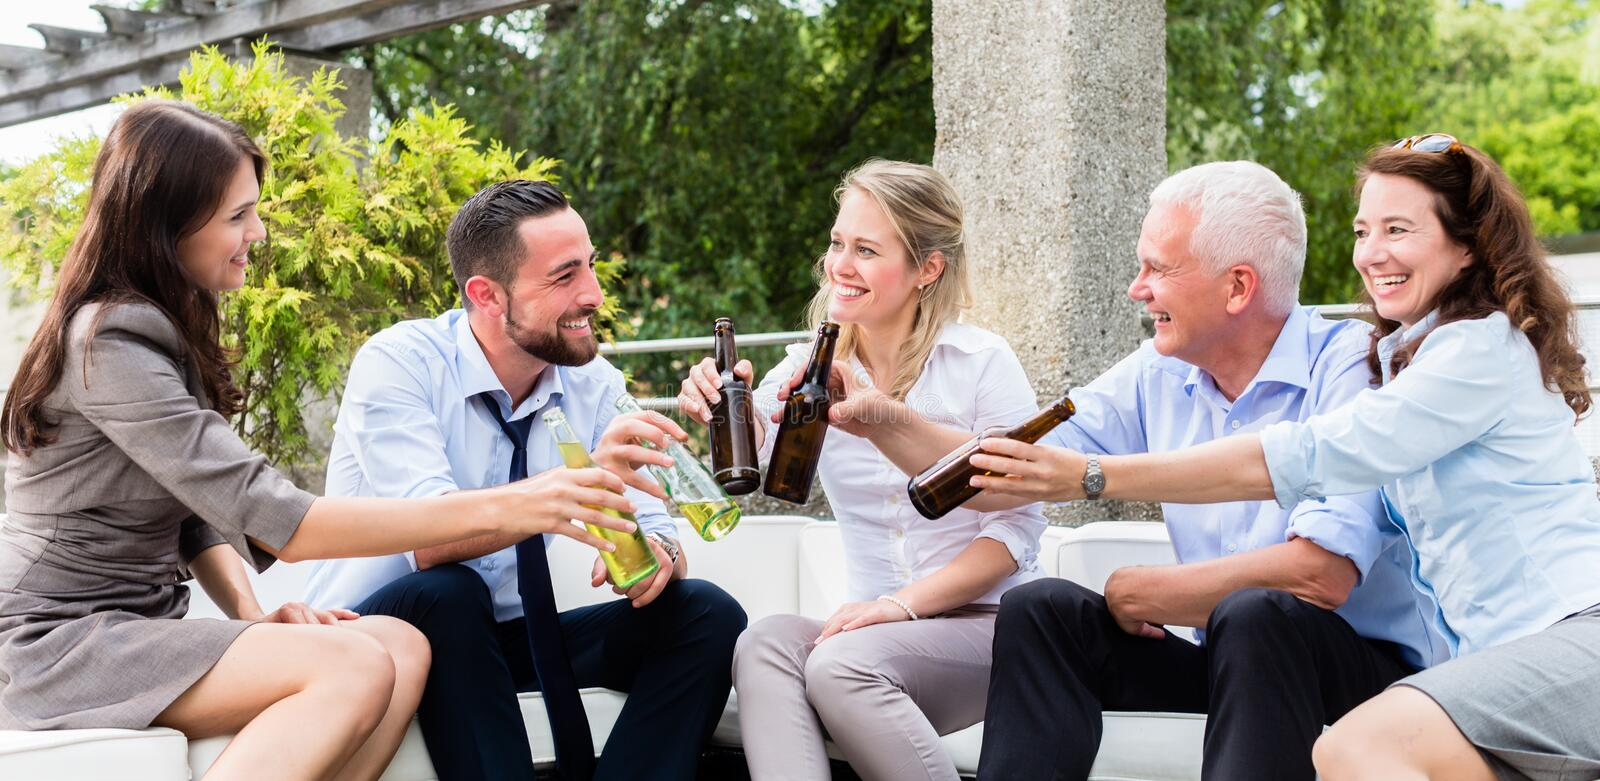 Office colleagues drinking beer after work stock photos